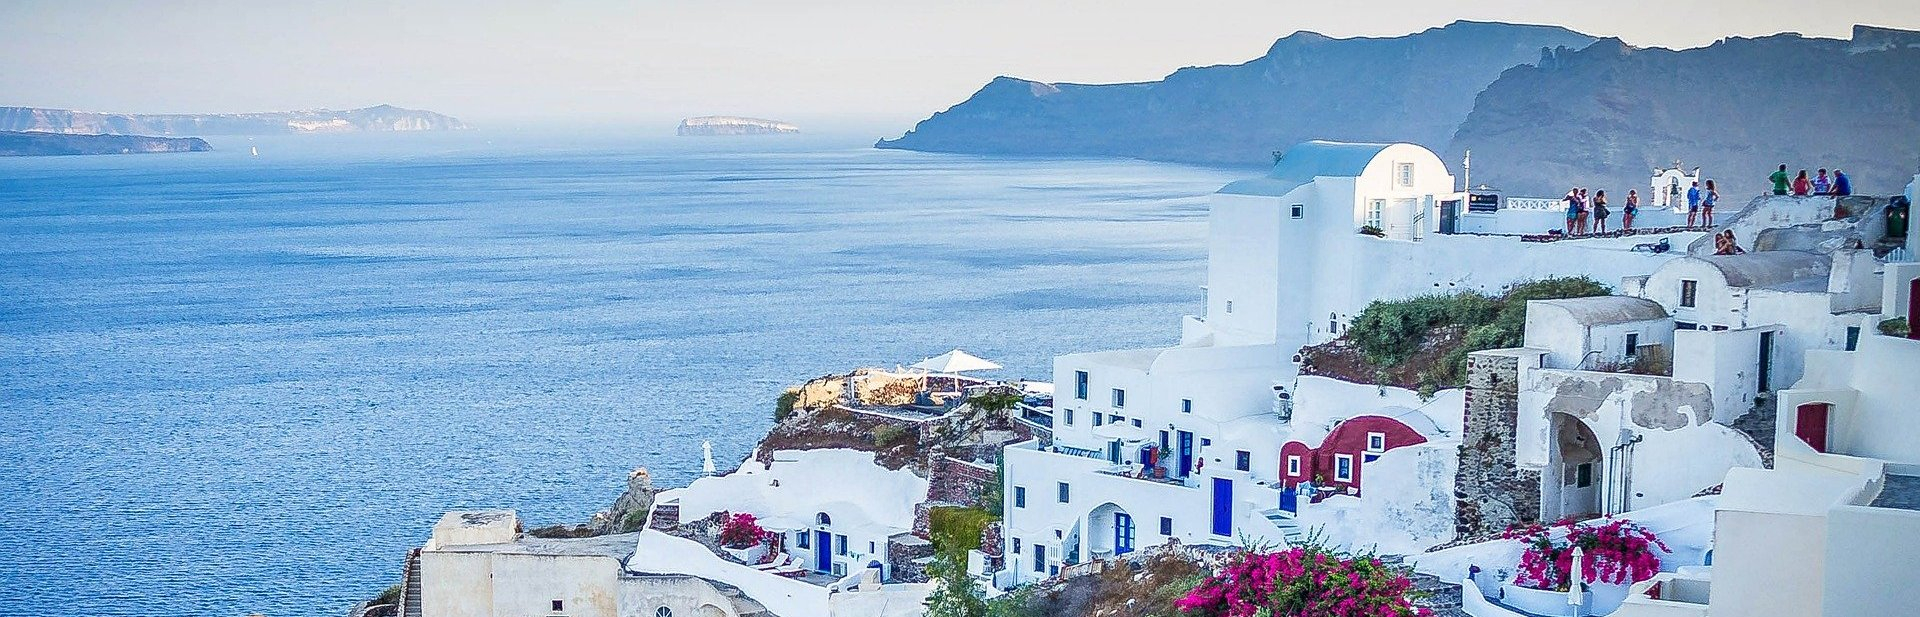 Best of Greece and Turkey Cruise